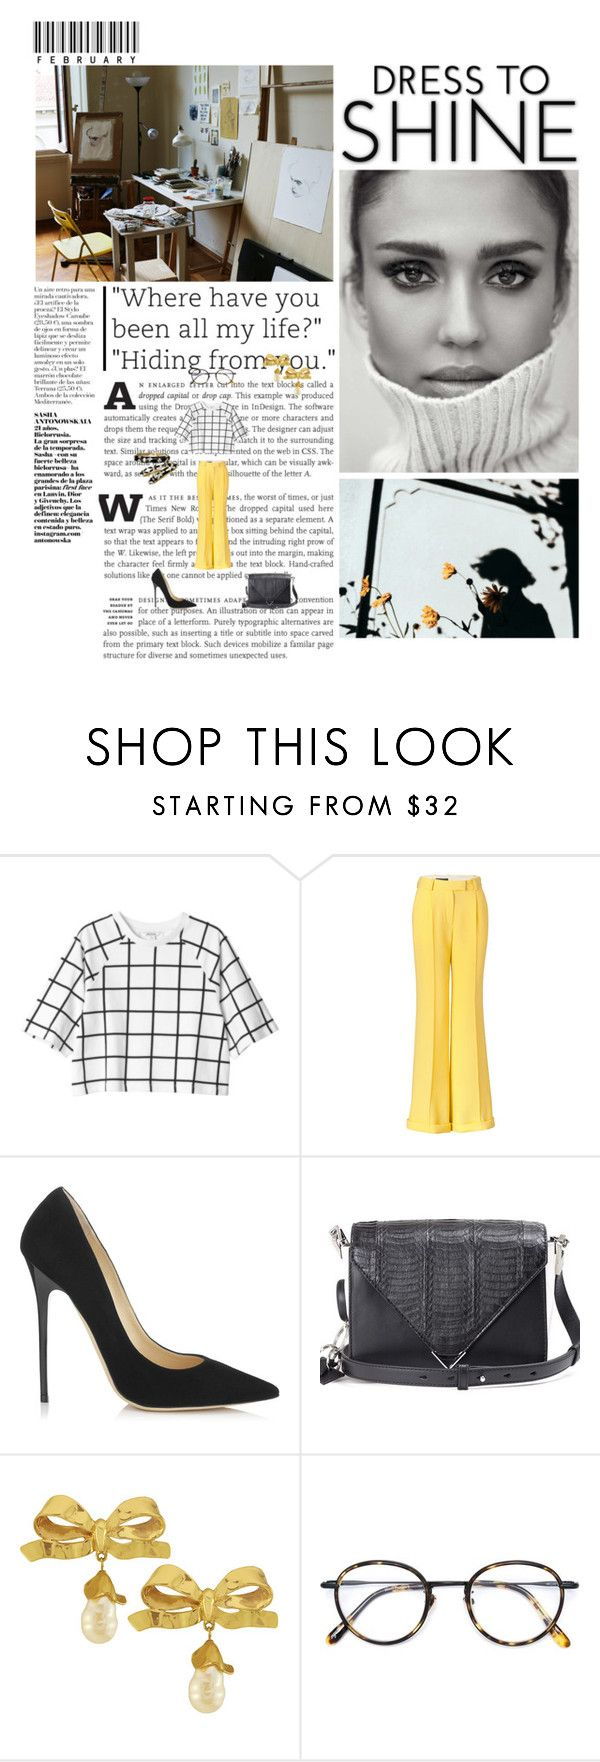 """Where have you been all my life?"" ""Hiding from you."" by miky94 ❤ liked on Polyvore featuring Monki, FAUSTO PUGLISI, Jimmy Choo, Alexander Wang, Vintage and Frency & Mercury"